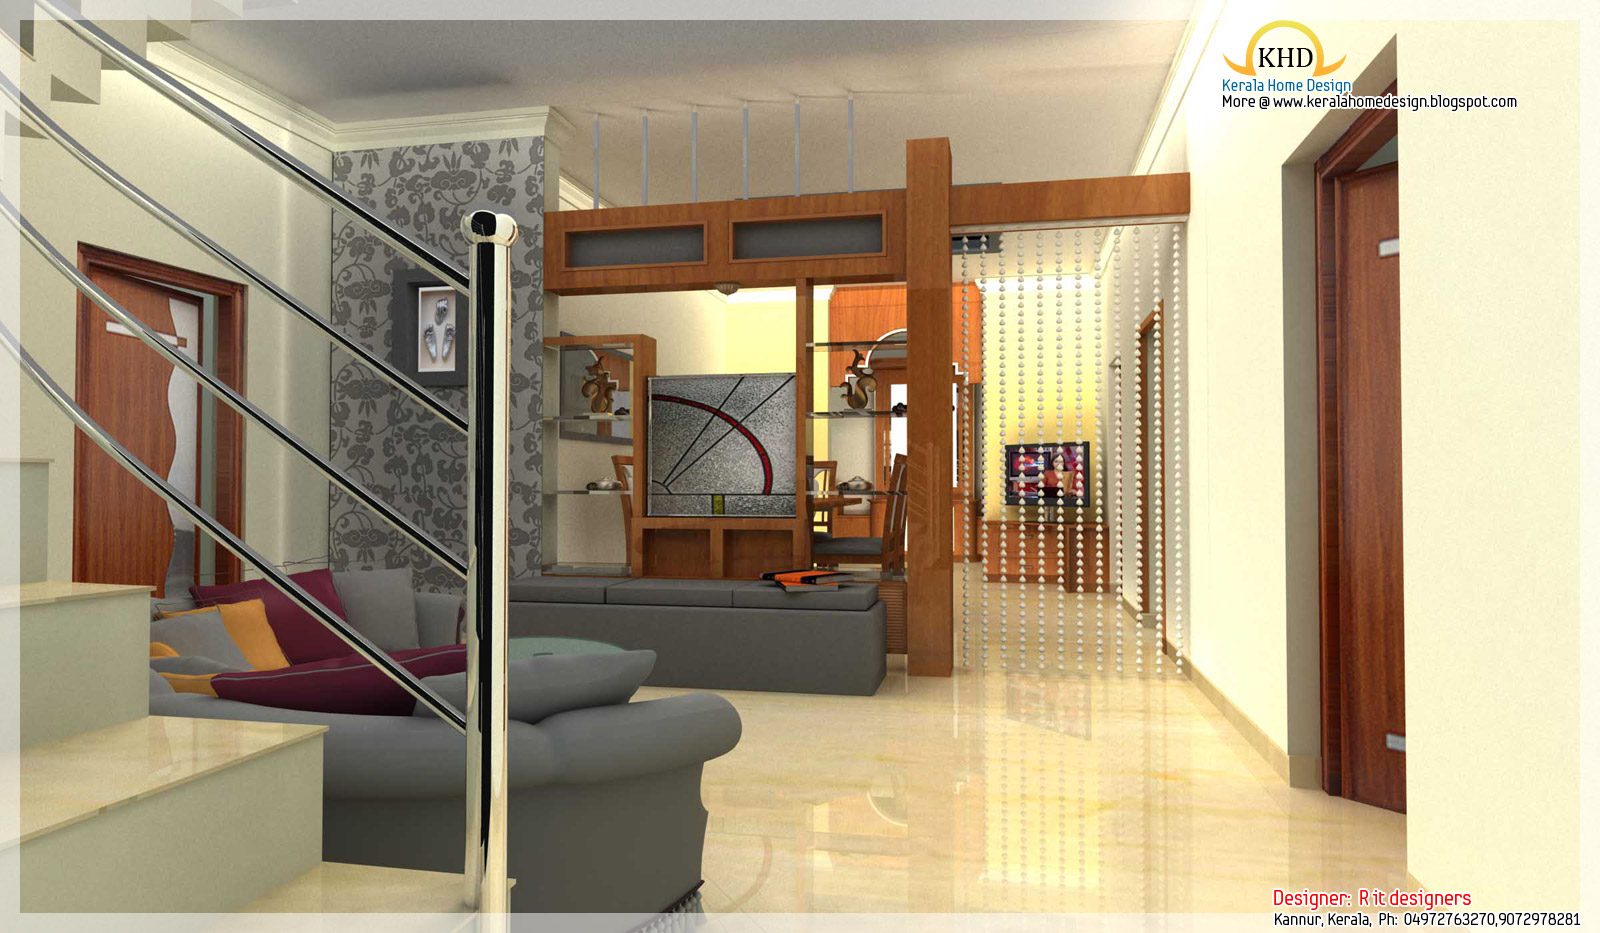 Interior design idea renderings kerala home design and for Kerala home interior design ideas